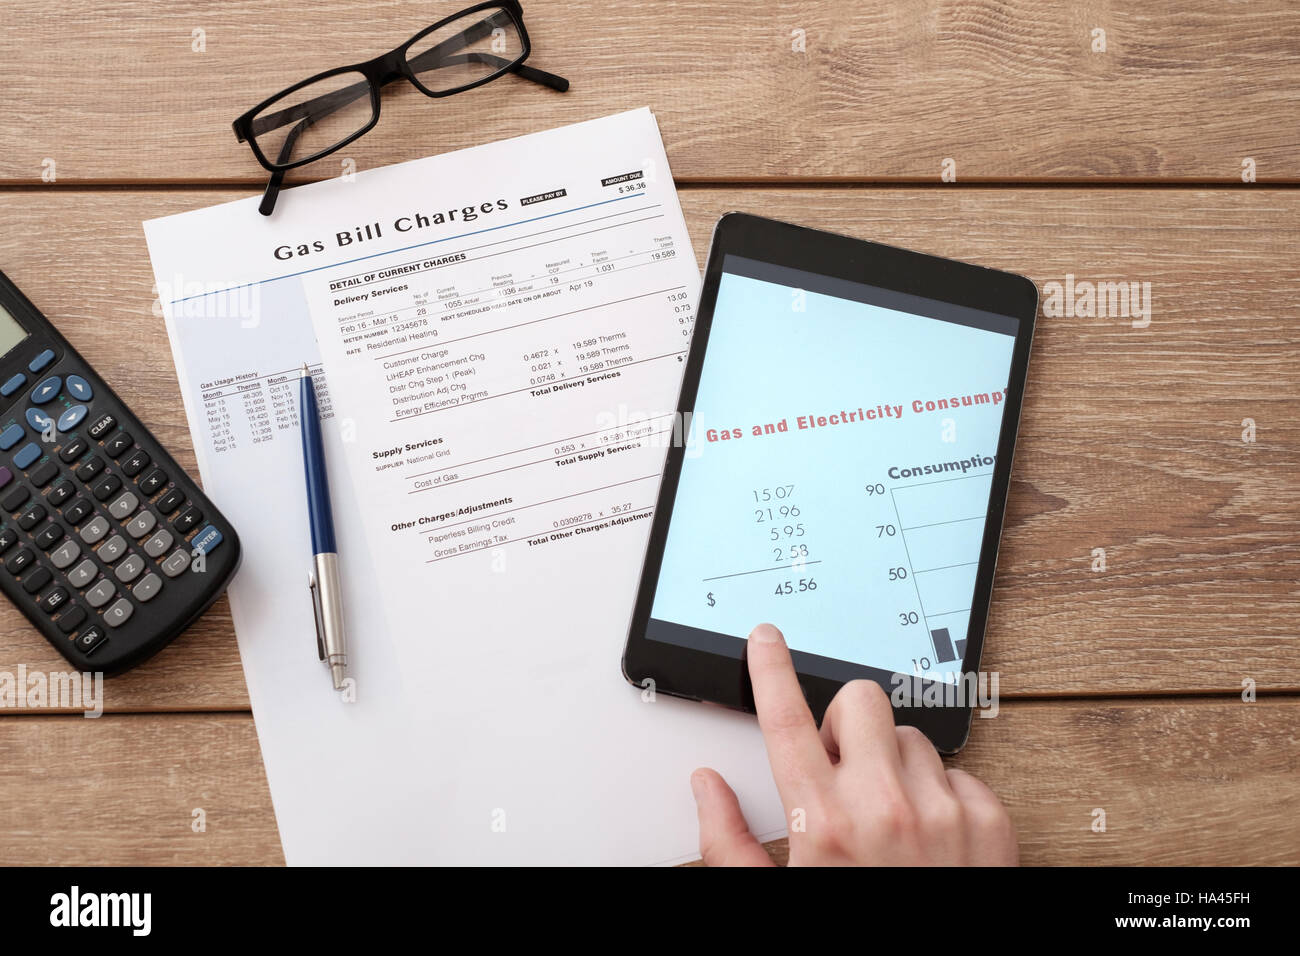 Gas bill charges form for online  calculation - Stock Image